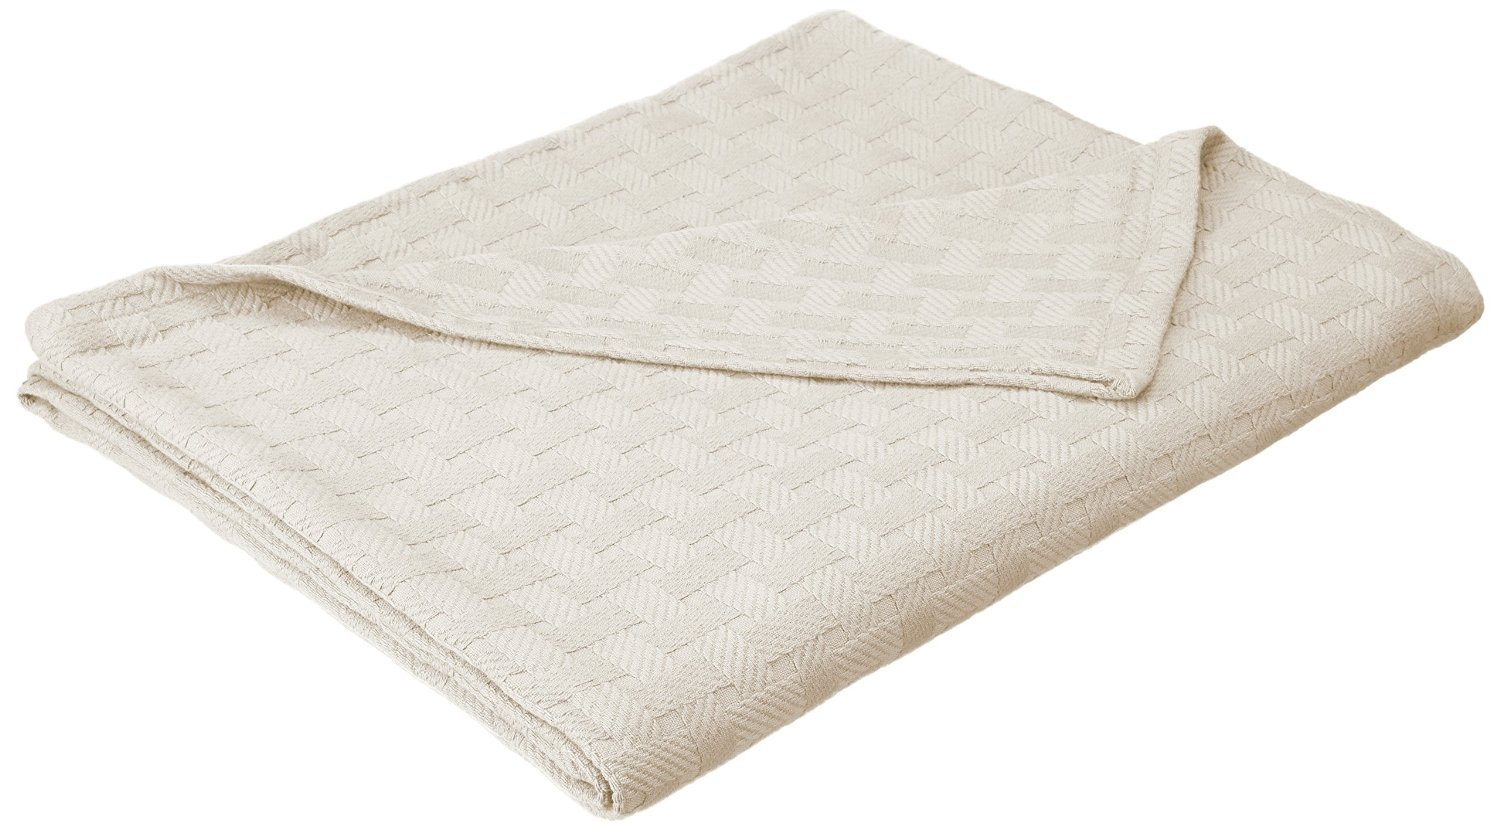 Cotton Blanket, Soft & Cozy, Woven, All-Season Throw, Breathable, Medium Weight, Picnic, Beach, Traveling, Camping, Thermal Blanket, Basket Weave Pattern, Twin, Ivory